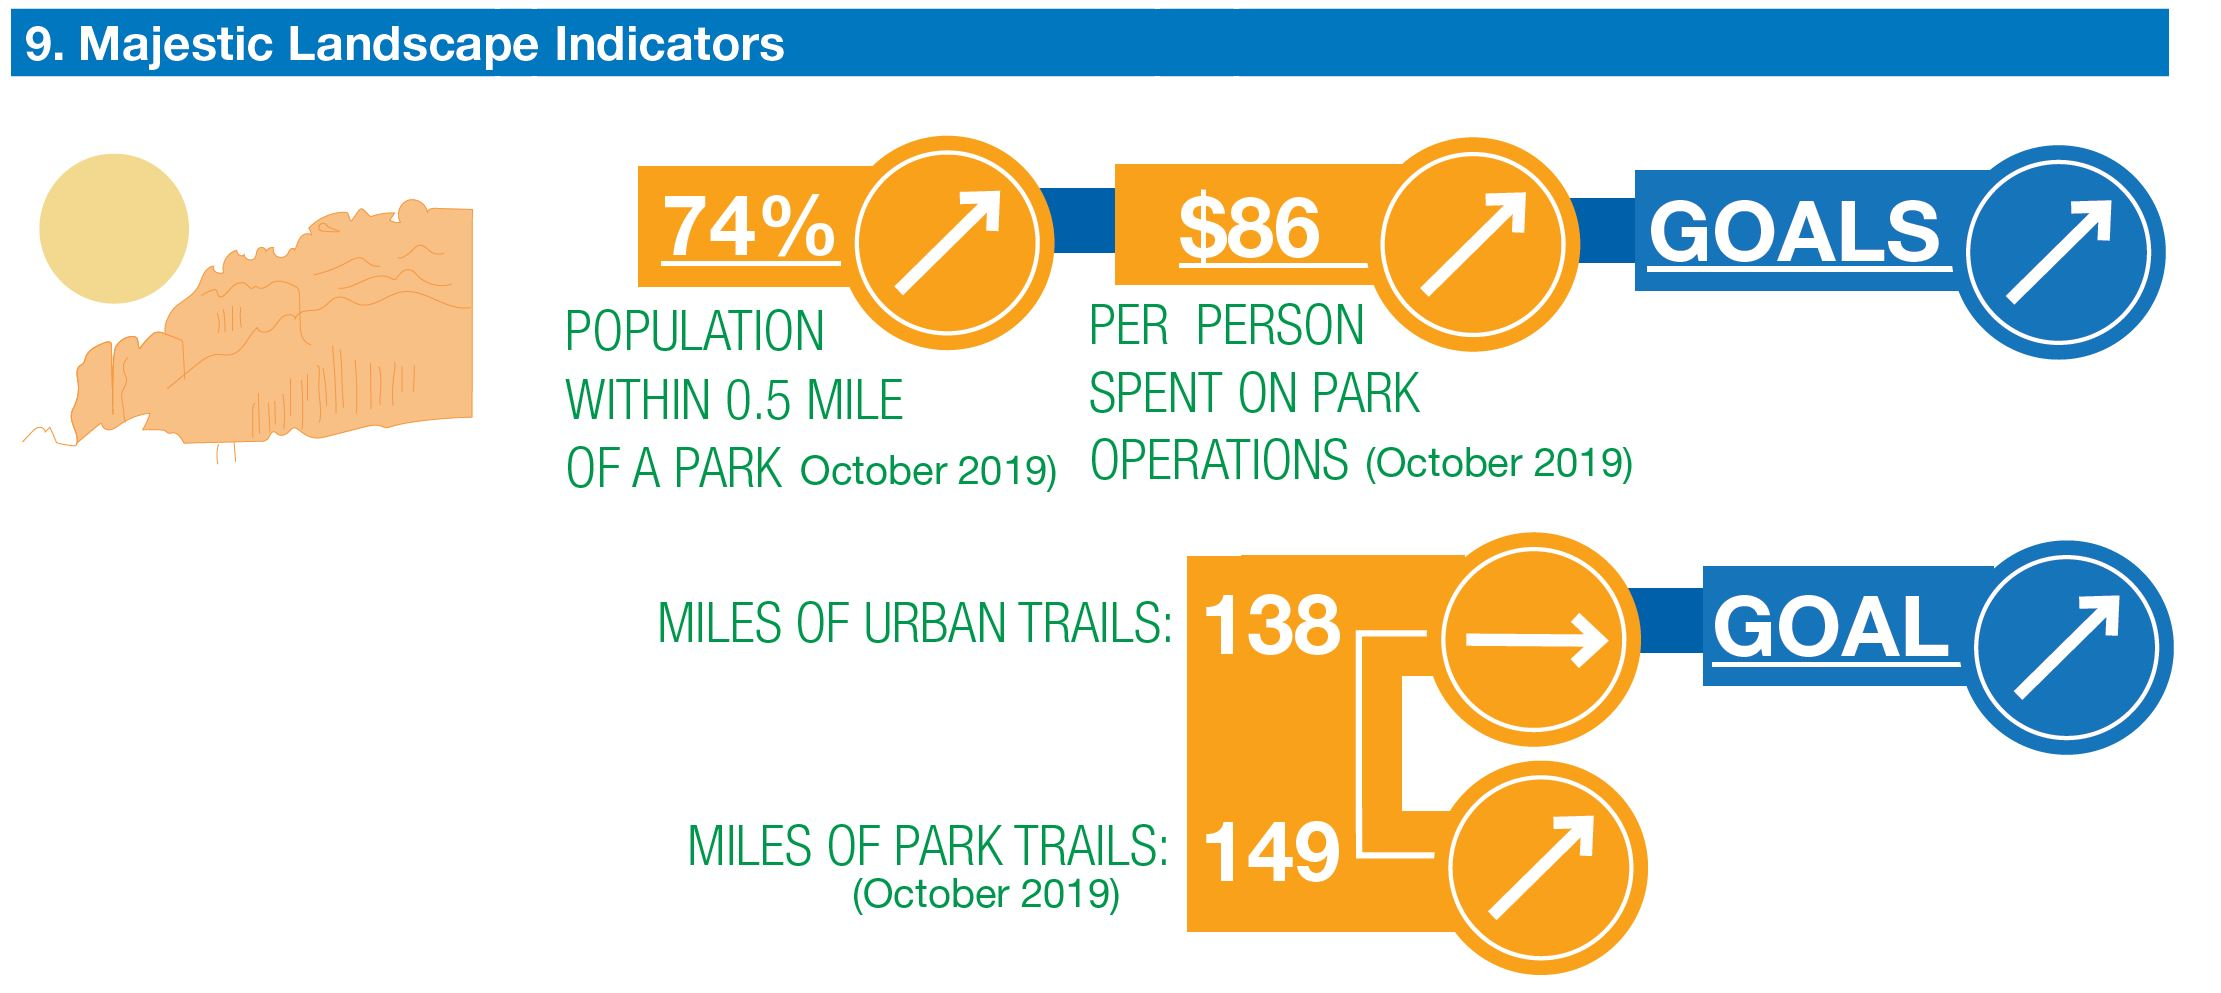 chart: population within 1/5 mile of park increasing. amount spent per person on parks increasing. miles of park trails increasing. Miles of urban trails stayed the same